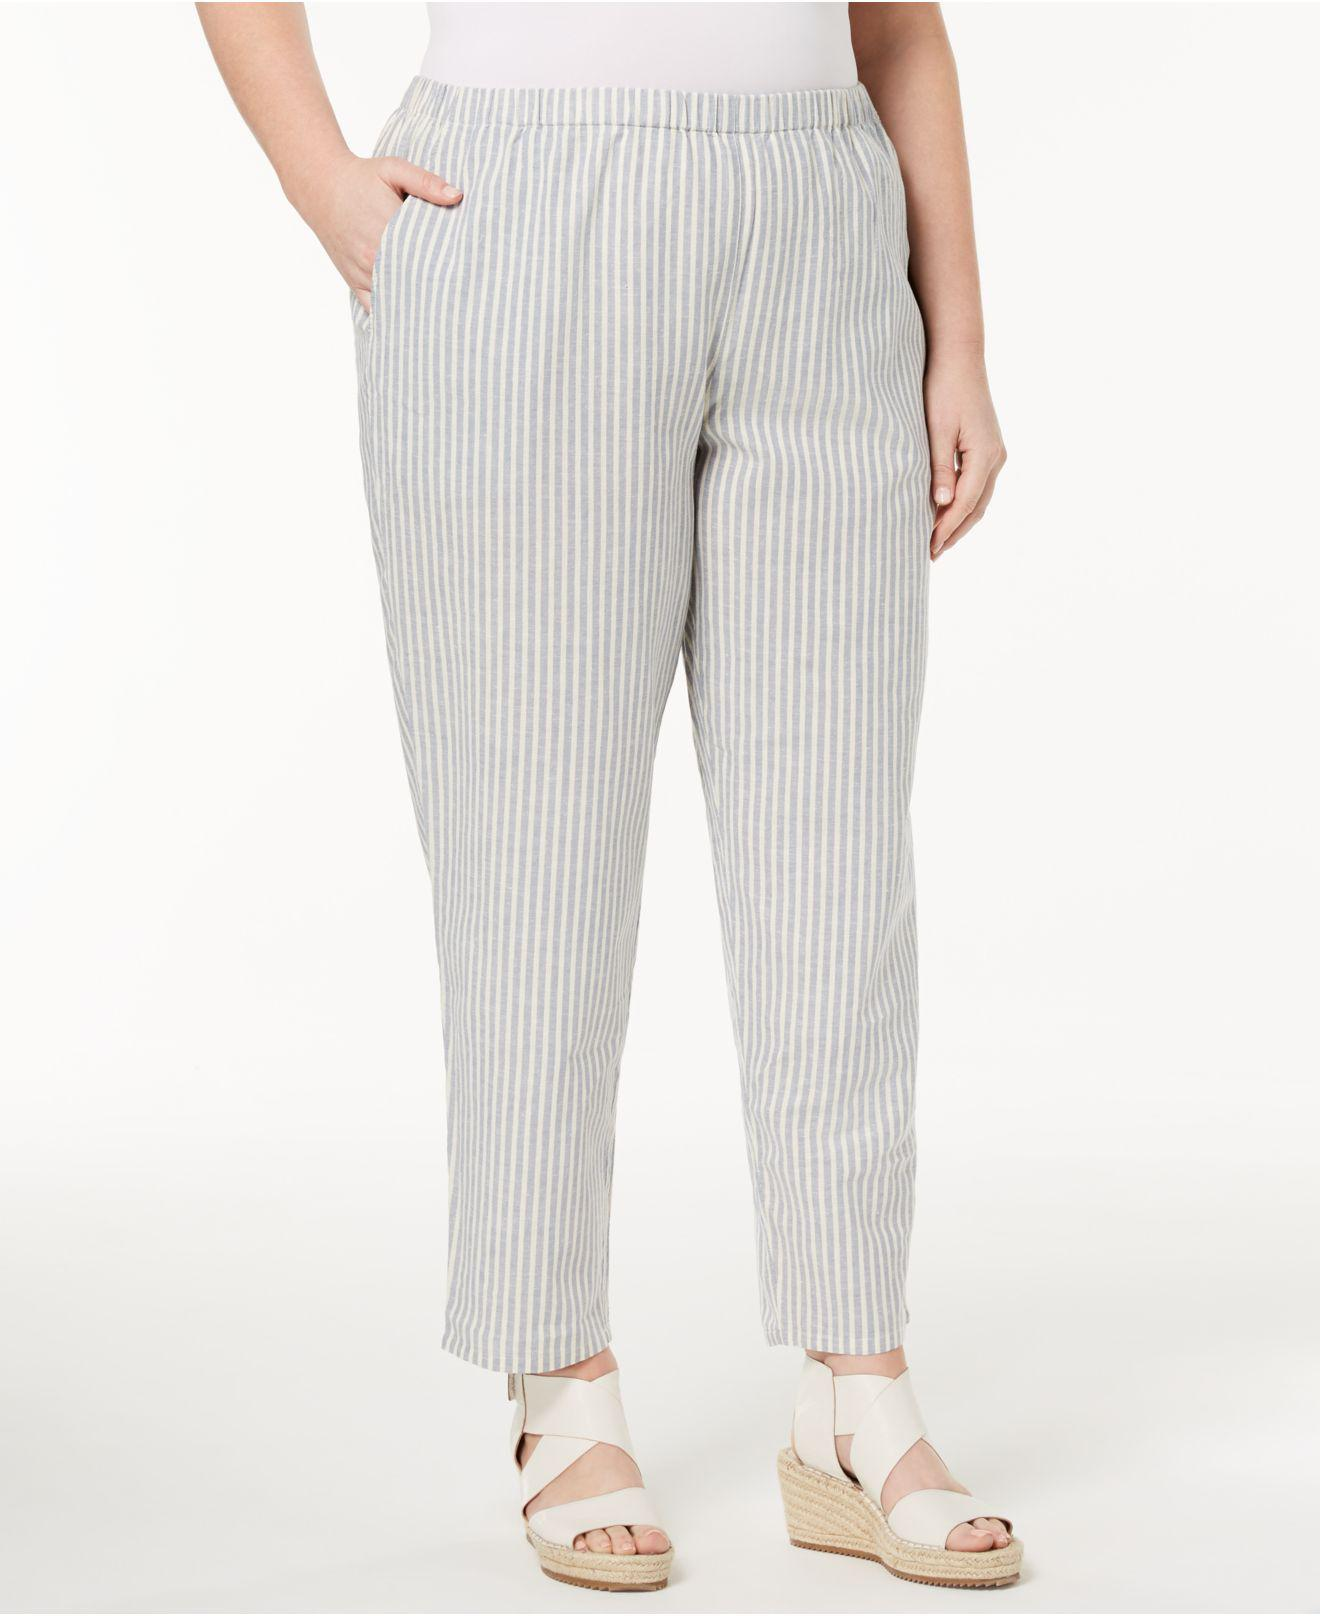 ad155a6591d Lyst - Eileen Fisher Plus Size Organic Cotton Ankle Pants in Gray